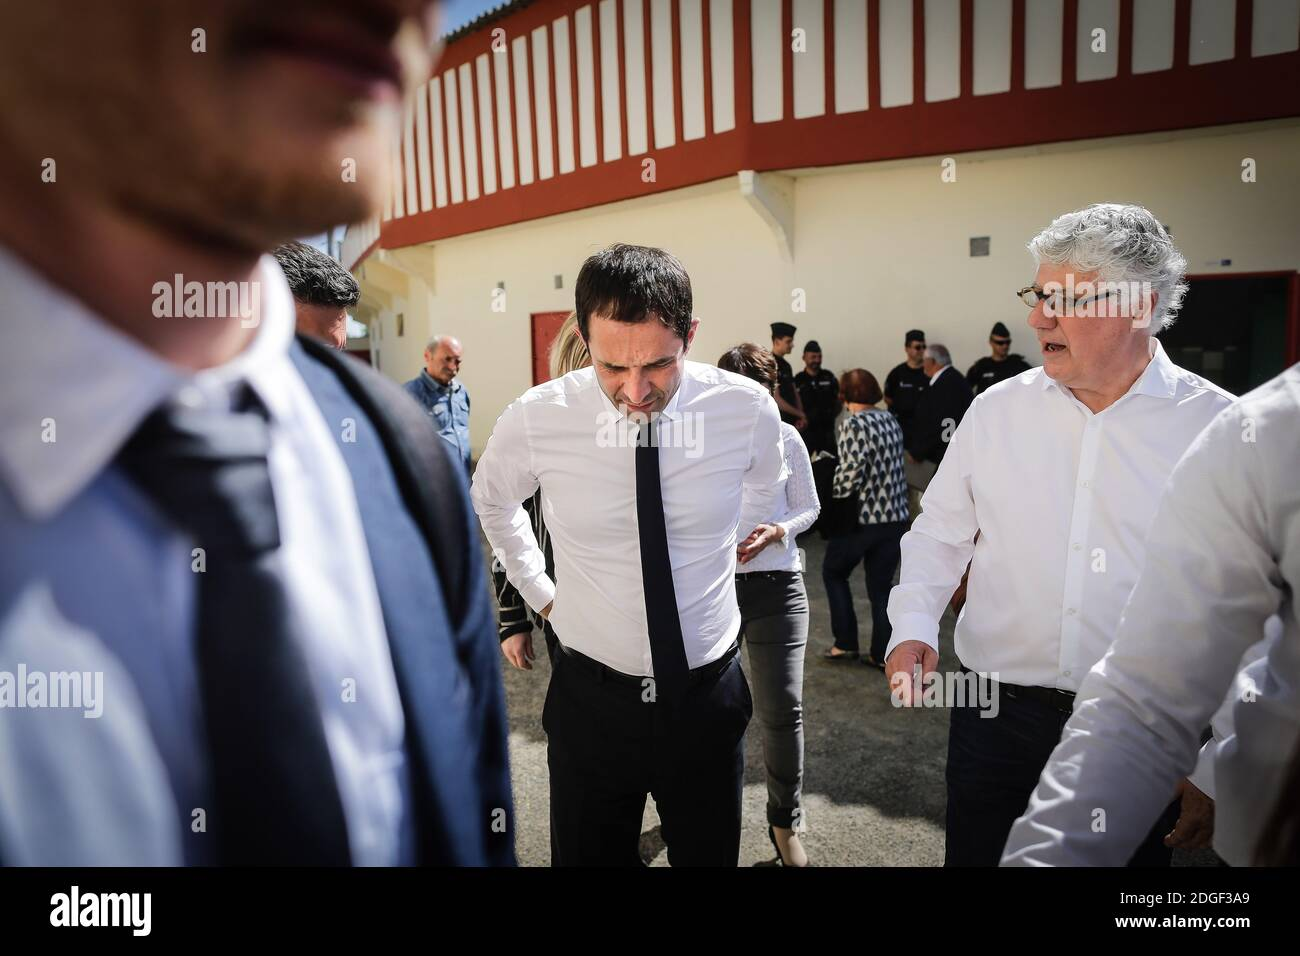 "Benoit Hamon, candidate of the left-wing party ""Parti Socialiste"" for presidential elections 2017 attends a Landaise race ( course landaise) in Aignan, France on April 17, 2017. Photo by Thibaud Moritz/ABACAPRESS.COM Stock Photo"